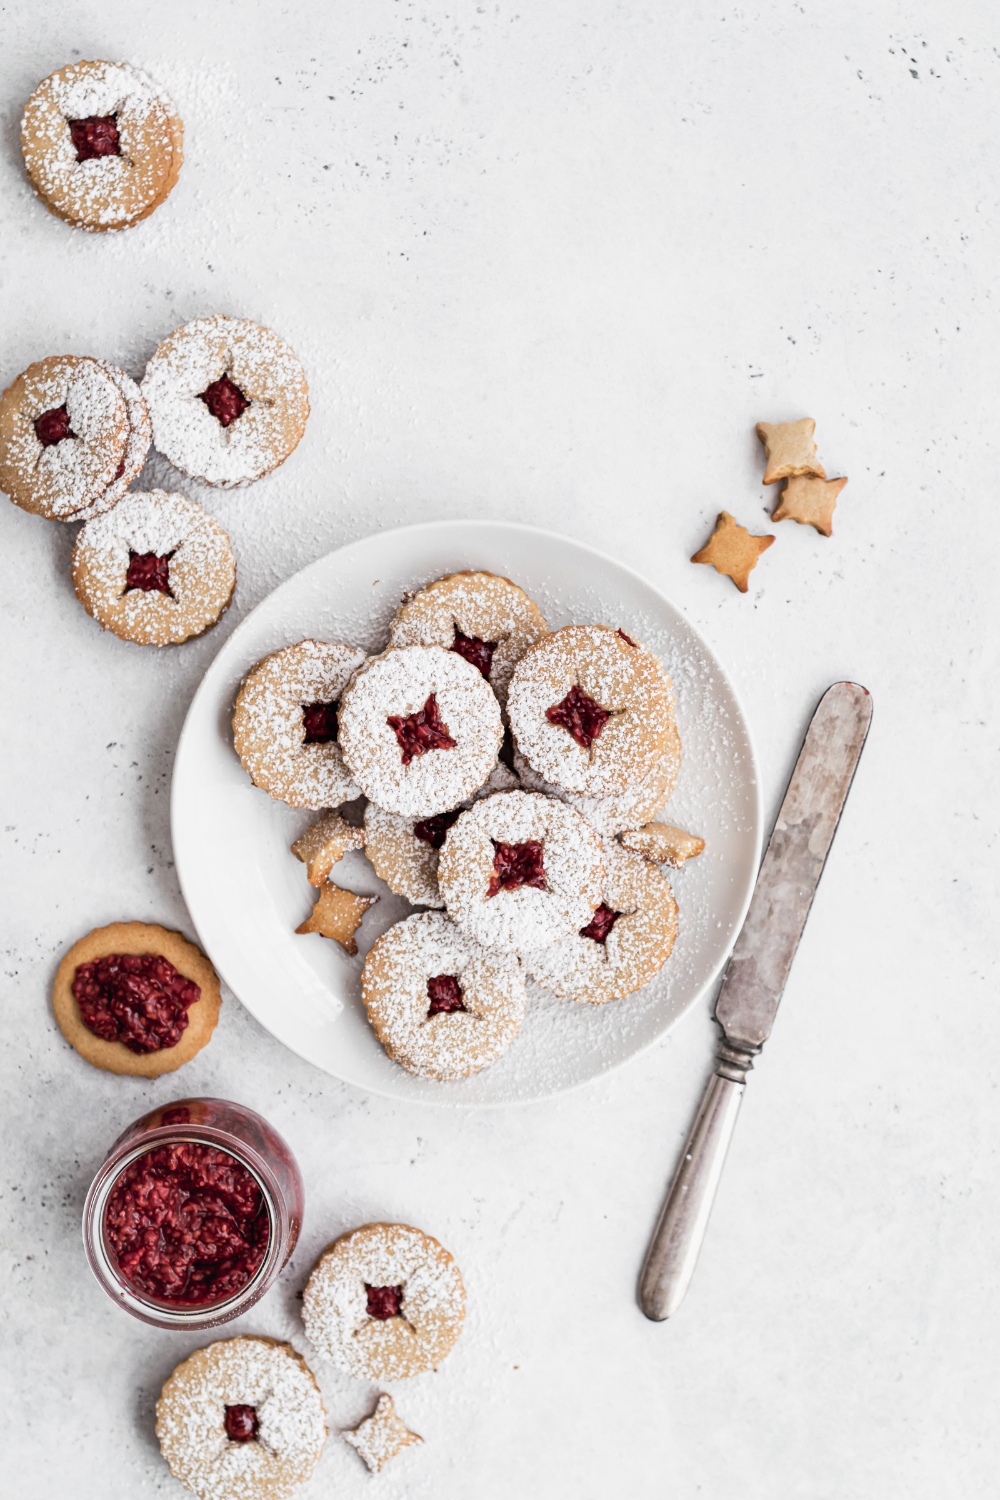 Paleo Linzer Cookies with Raspberry Chia or Fig Jam   Well Fed Soul